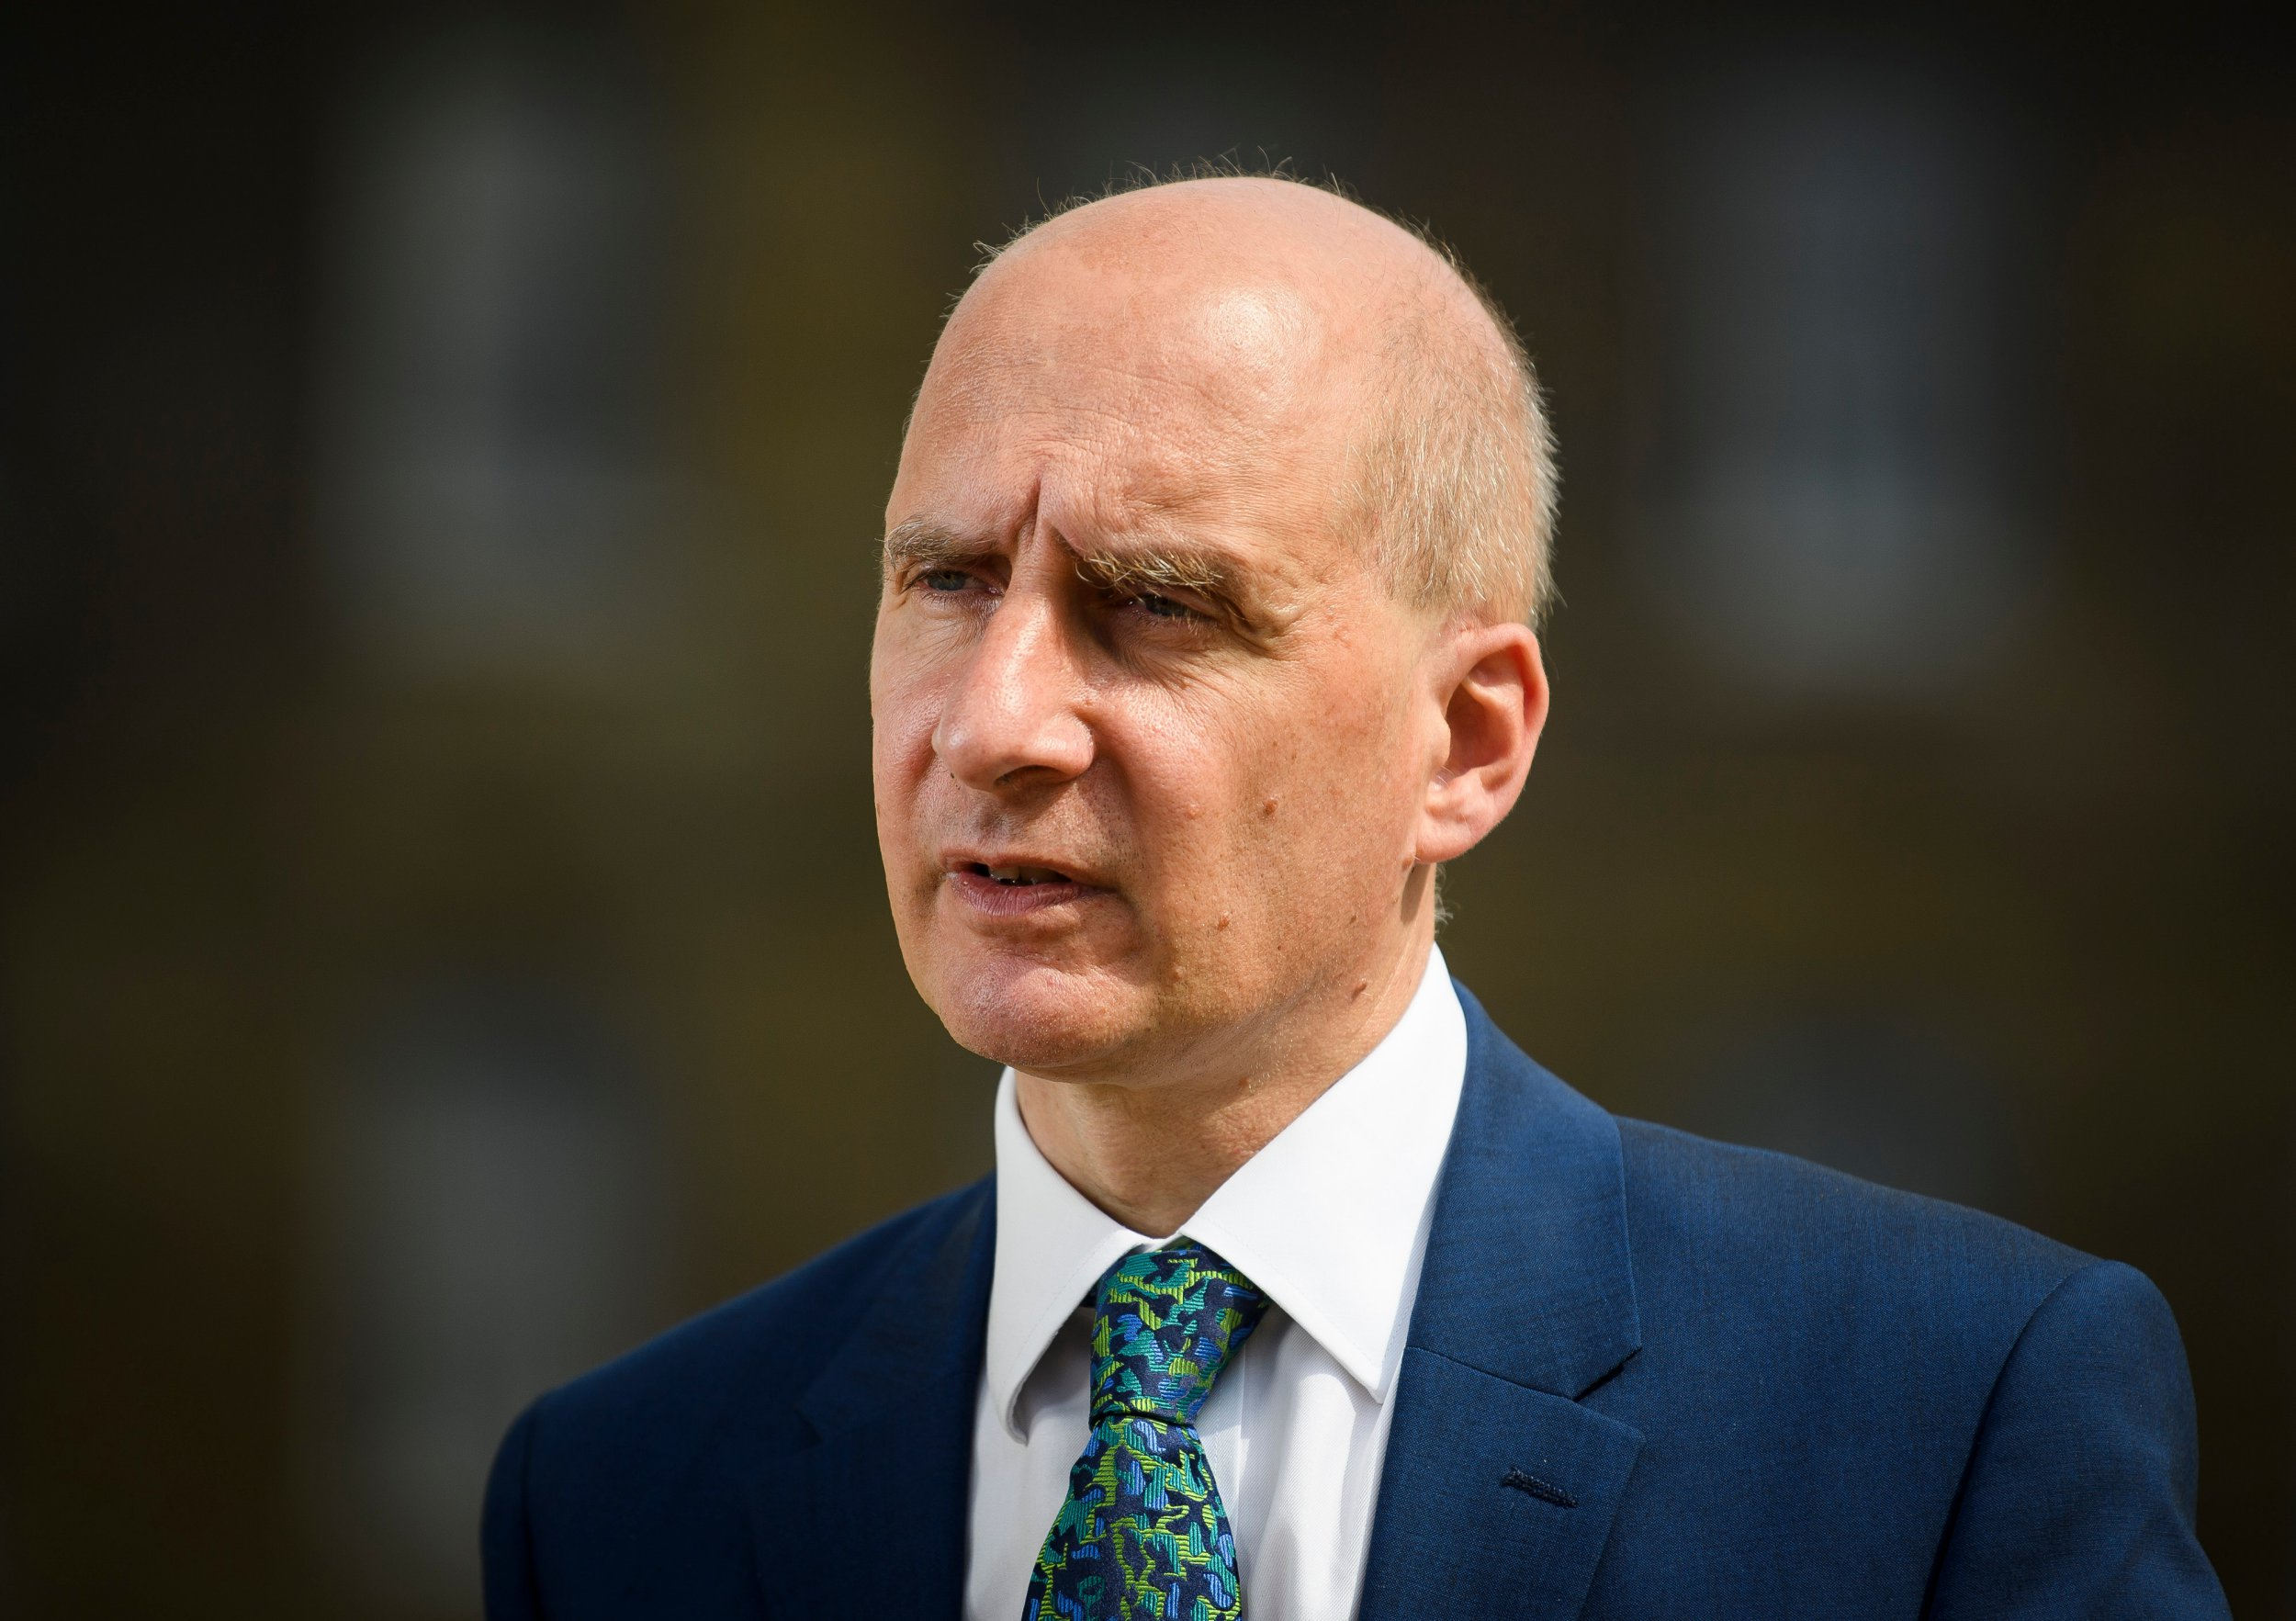 Mandatory Credit: Photo by Ben Cawthra/REX/Shutterstock (9746665d) Lord Adonis is seen speaking to media in Westminster about the resignation of former Brexit Secretary David Davis. David Davis and Boris Johnson resign, London, UK - 09 Jul 2018